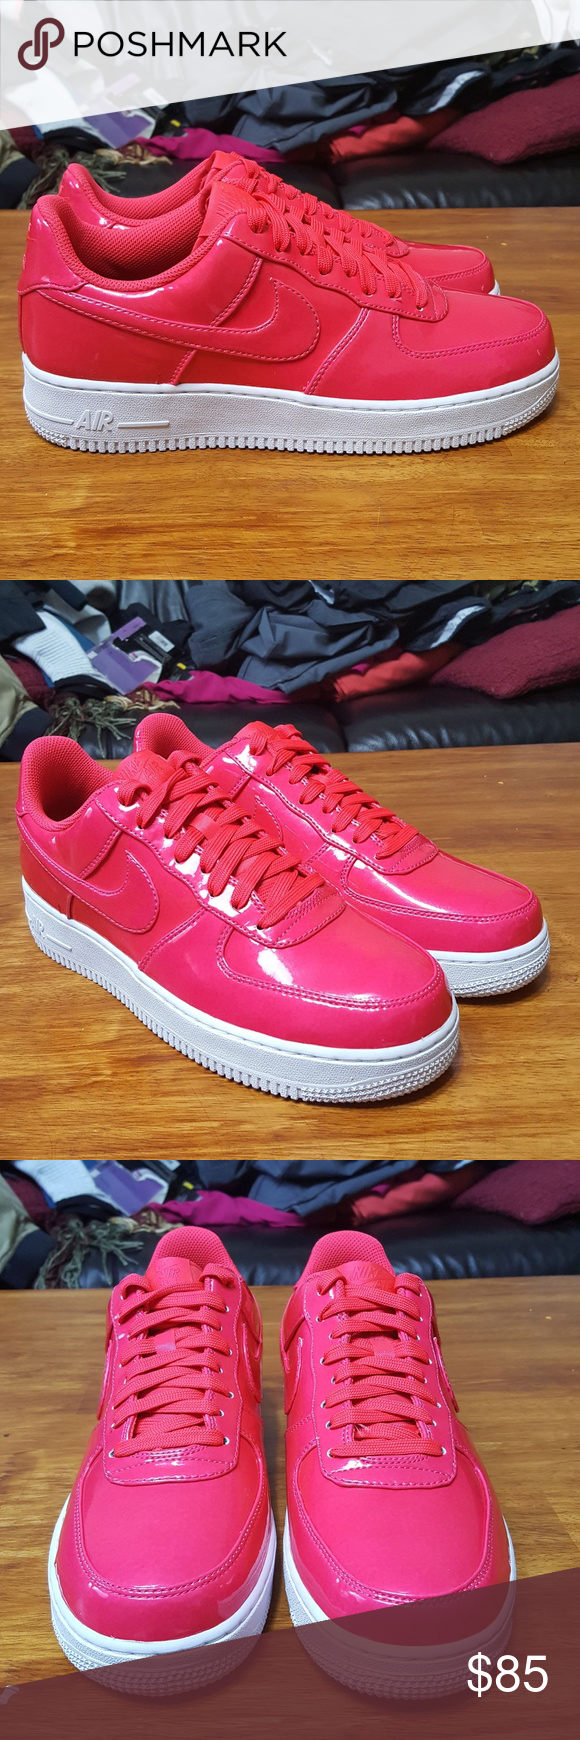 low priced dac6f 3a1a1 Nike Air Force 1 LV8 UV Low Siren Red Pink AJ9505 Nike Air Force 1 One